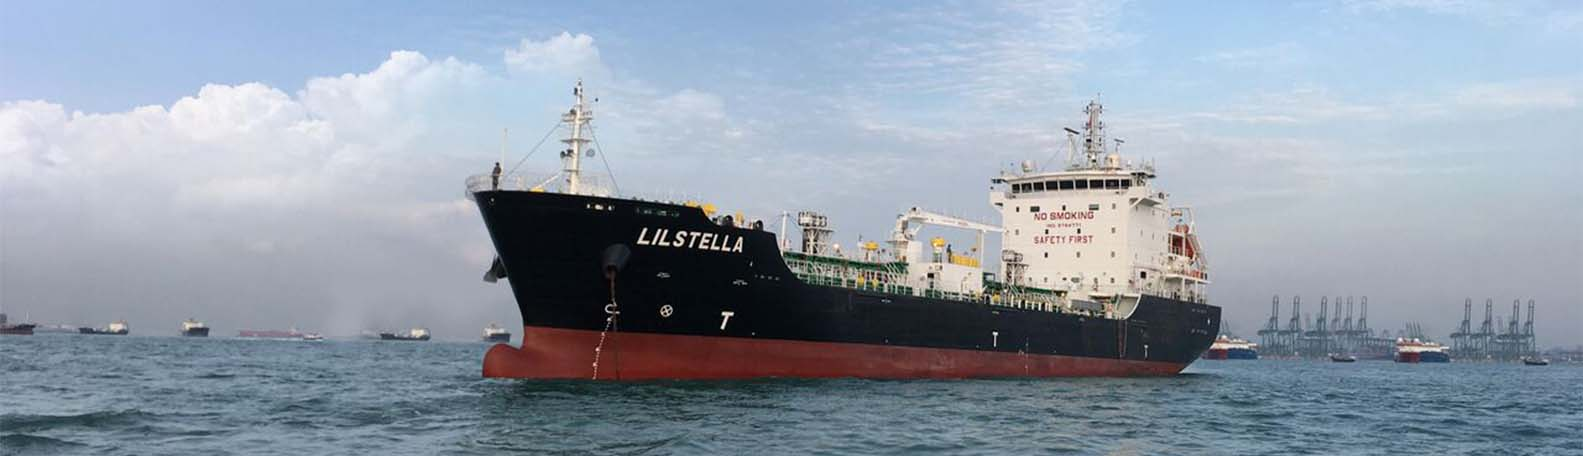 Lilstella Vessel